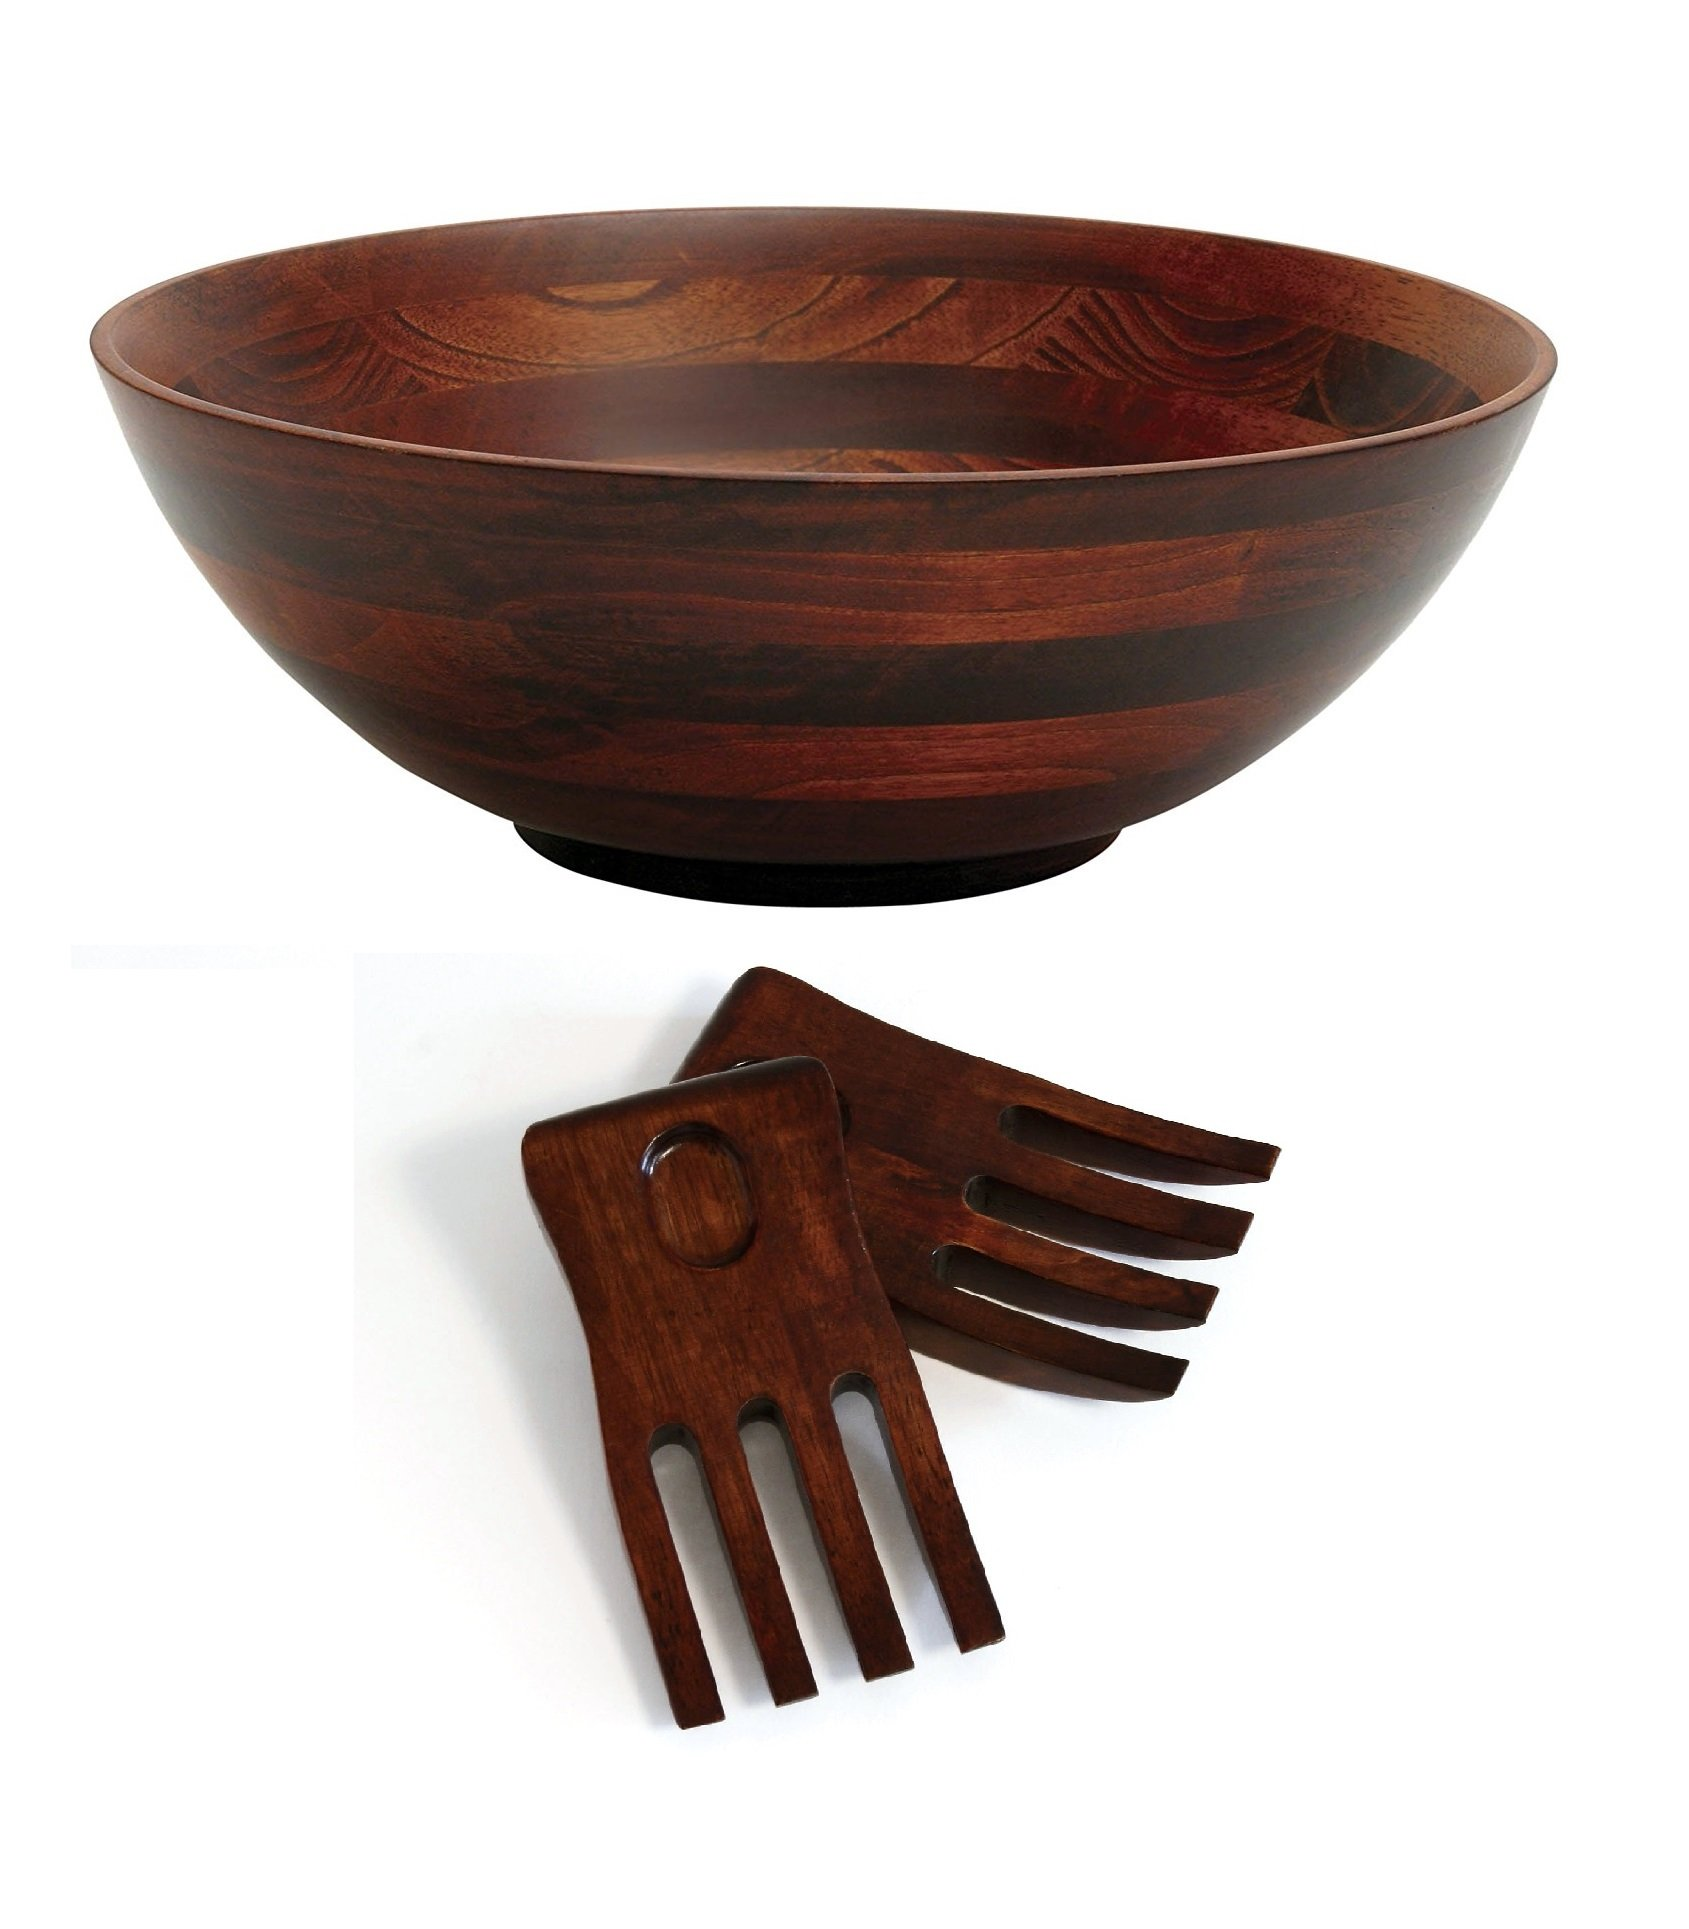 Lipper International 274-3 Cherry Finished Footed Serving Bowl with 2 Salad Hands, Large, 13.75'' Diameter x 5'' Height, 3-Piece Set by Lipper International